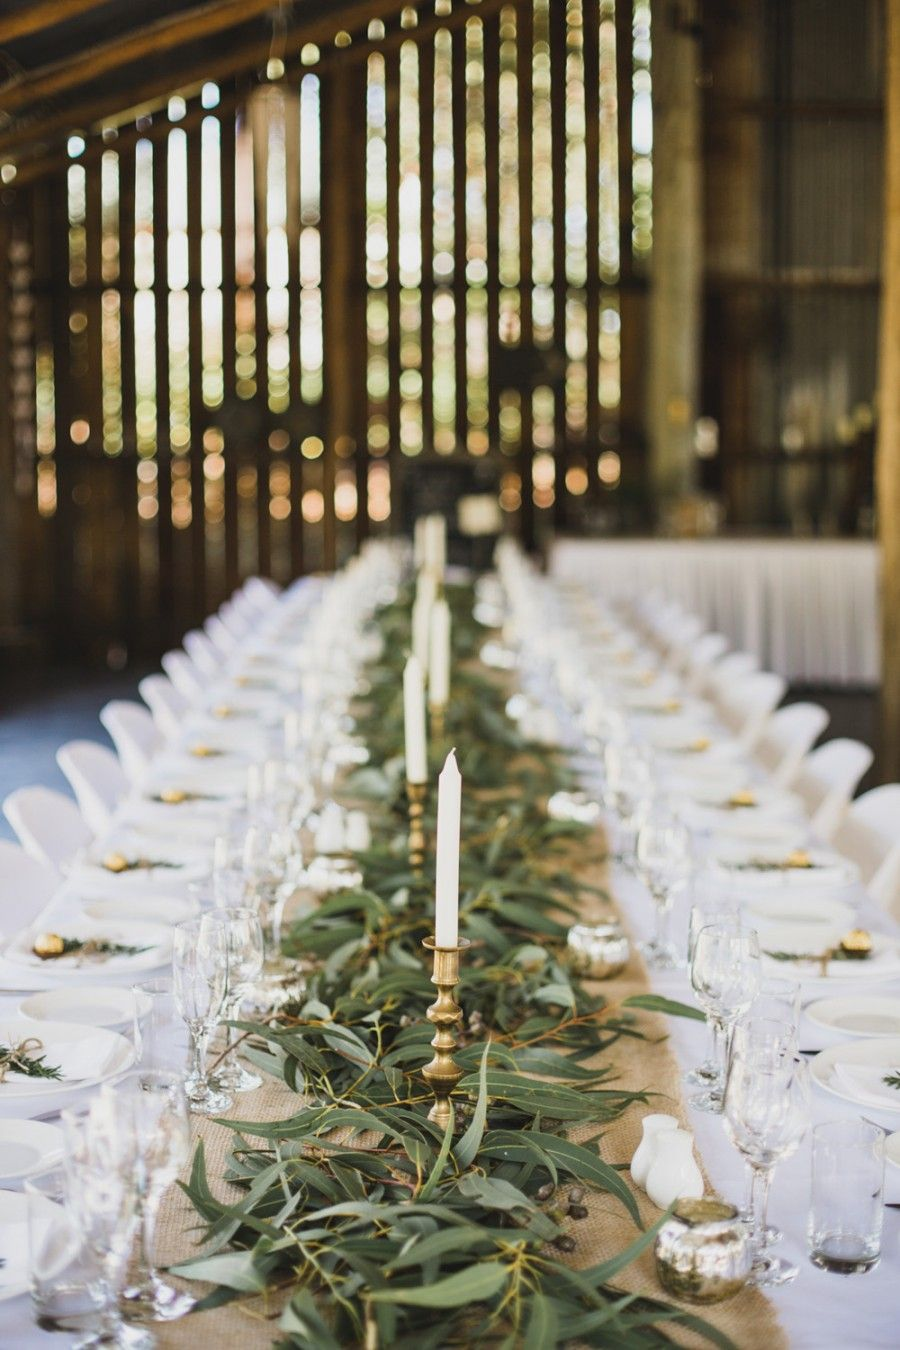 Rach adams diy outback wedding pinterest table flowers cheap effective and smells great lay eucalyptus leaves down your tables be sure to check theyre spider free first junglespirit Image collections